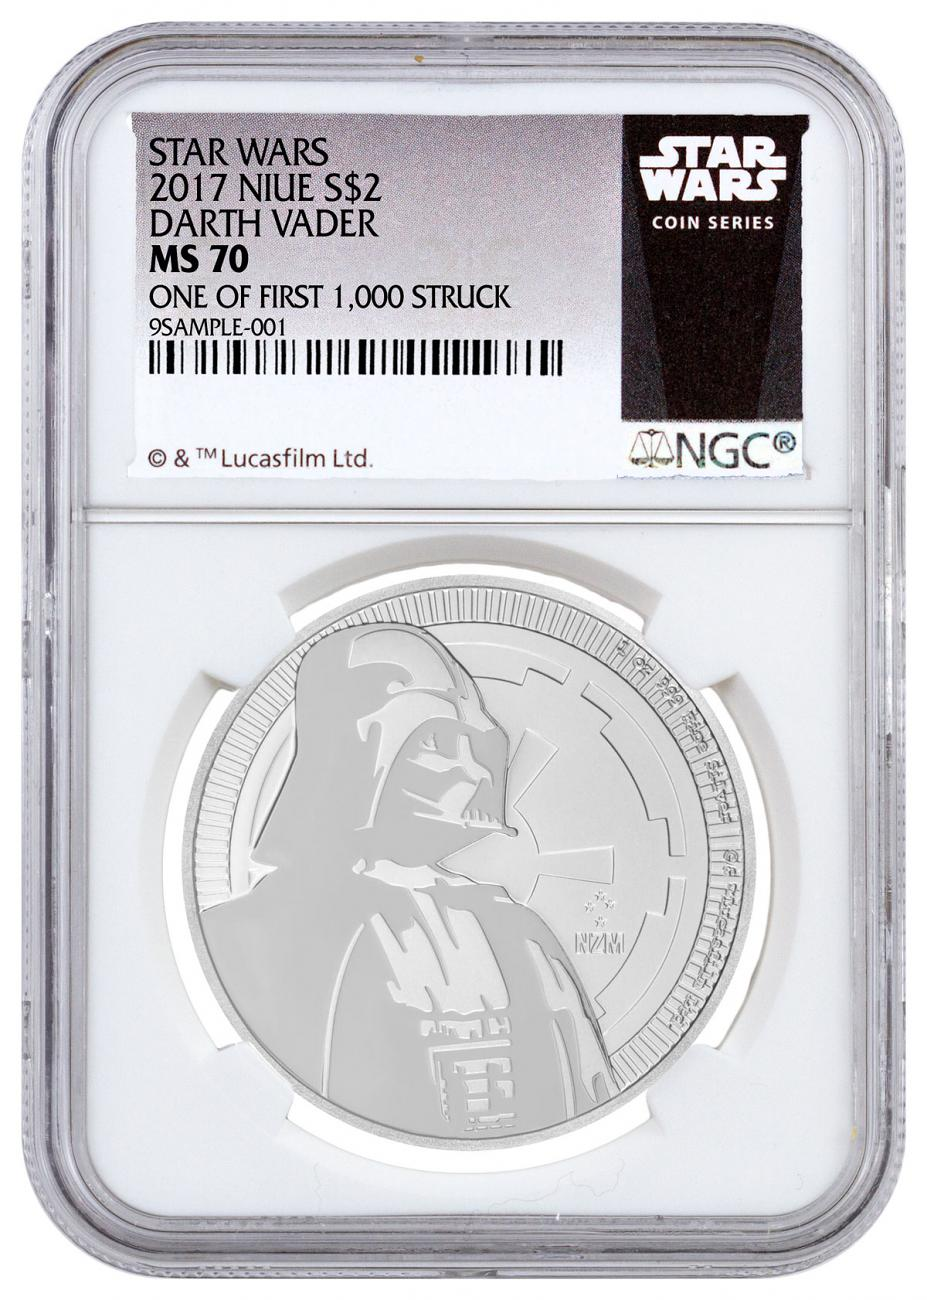 2017 Niue Star Wars Classic - Darth Vader 1 oz Silver $2 Coin NGC MS70 One of First 1,000 Struck Exclusive Star Wars Label